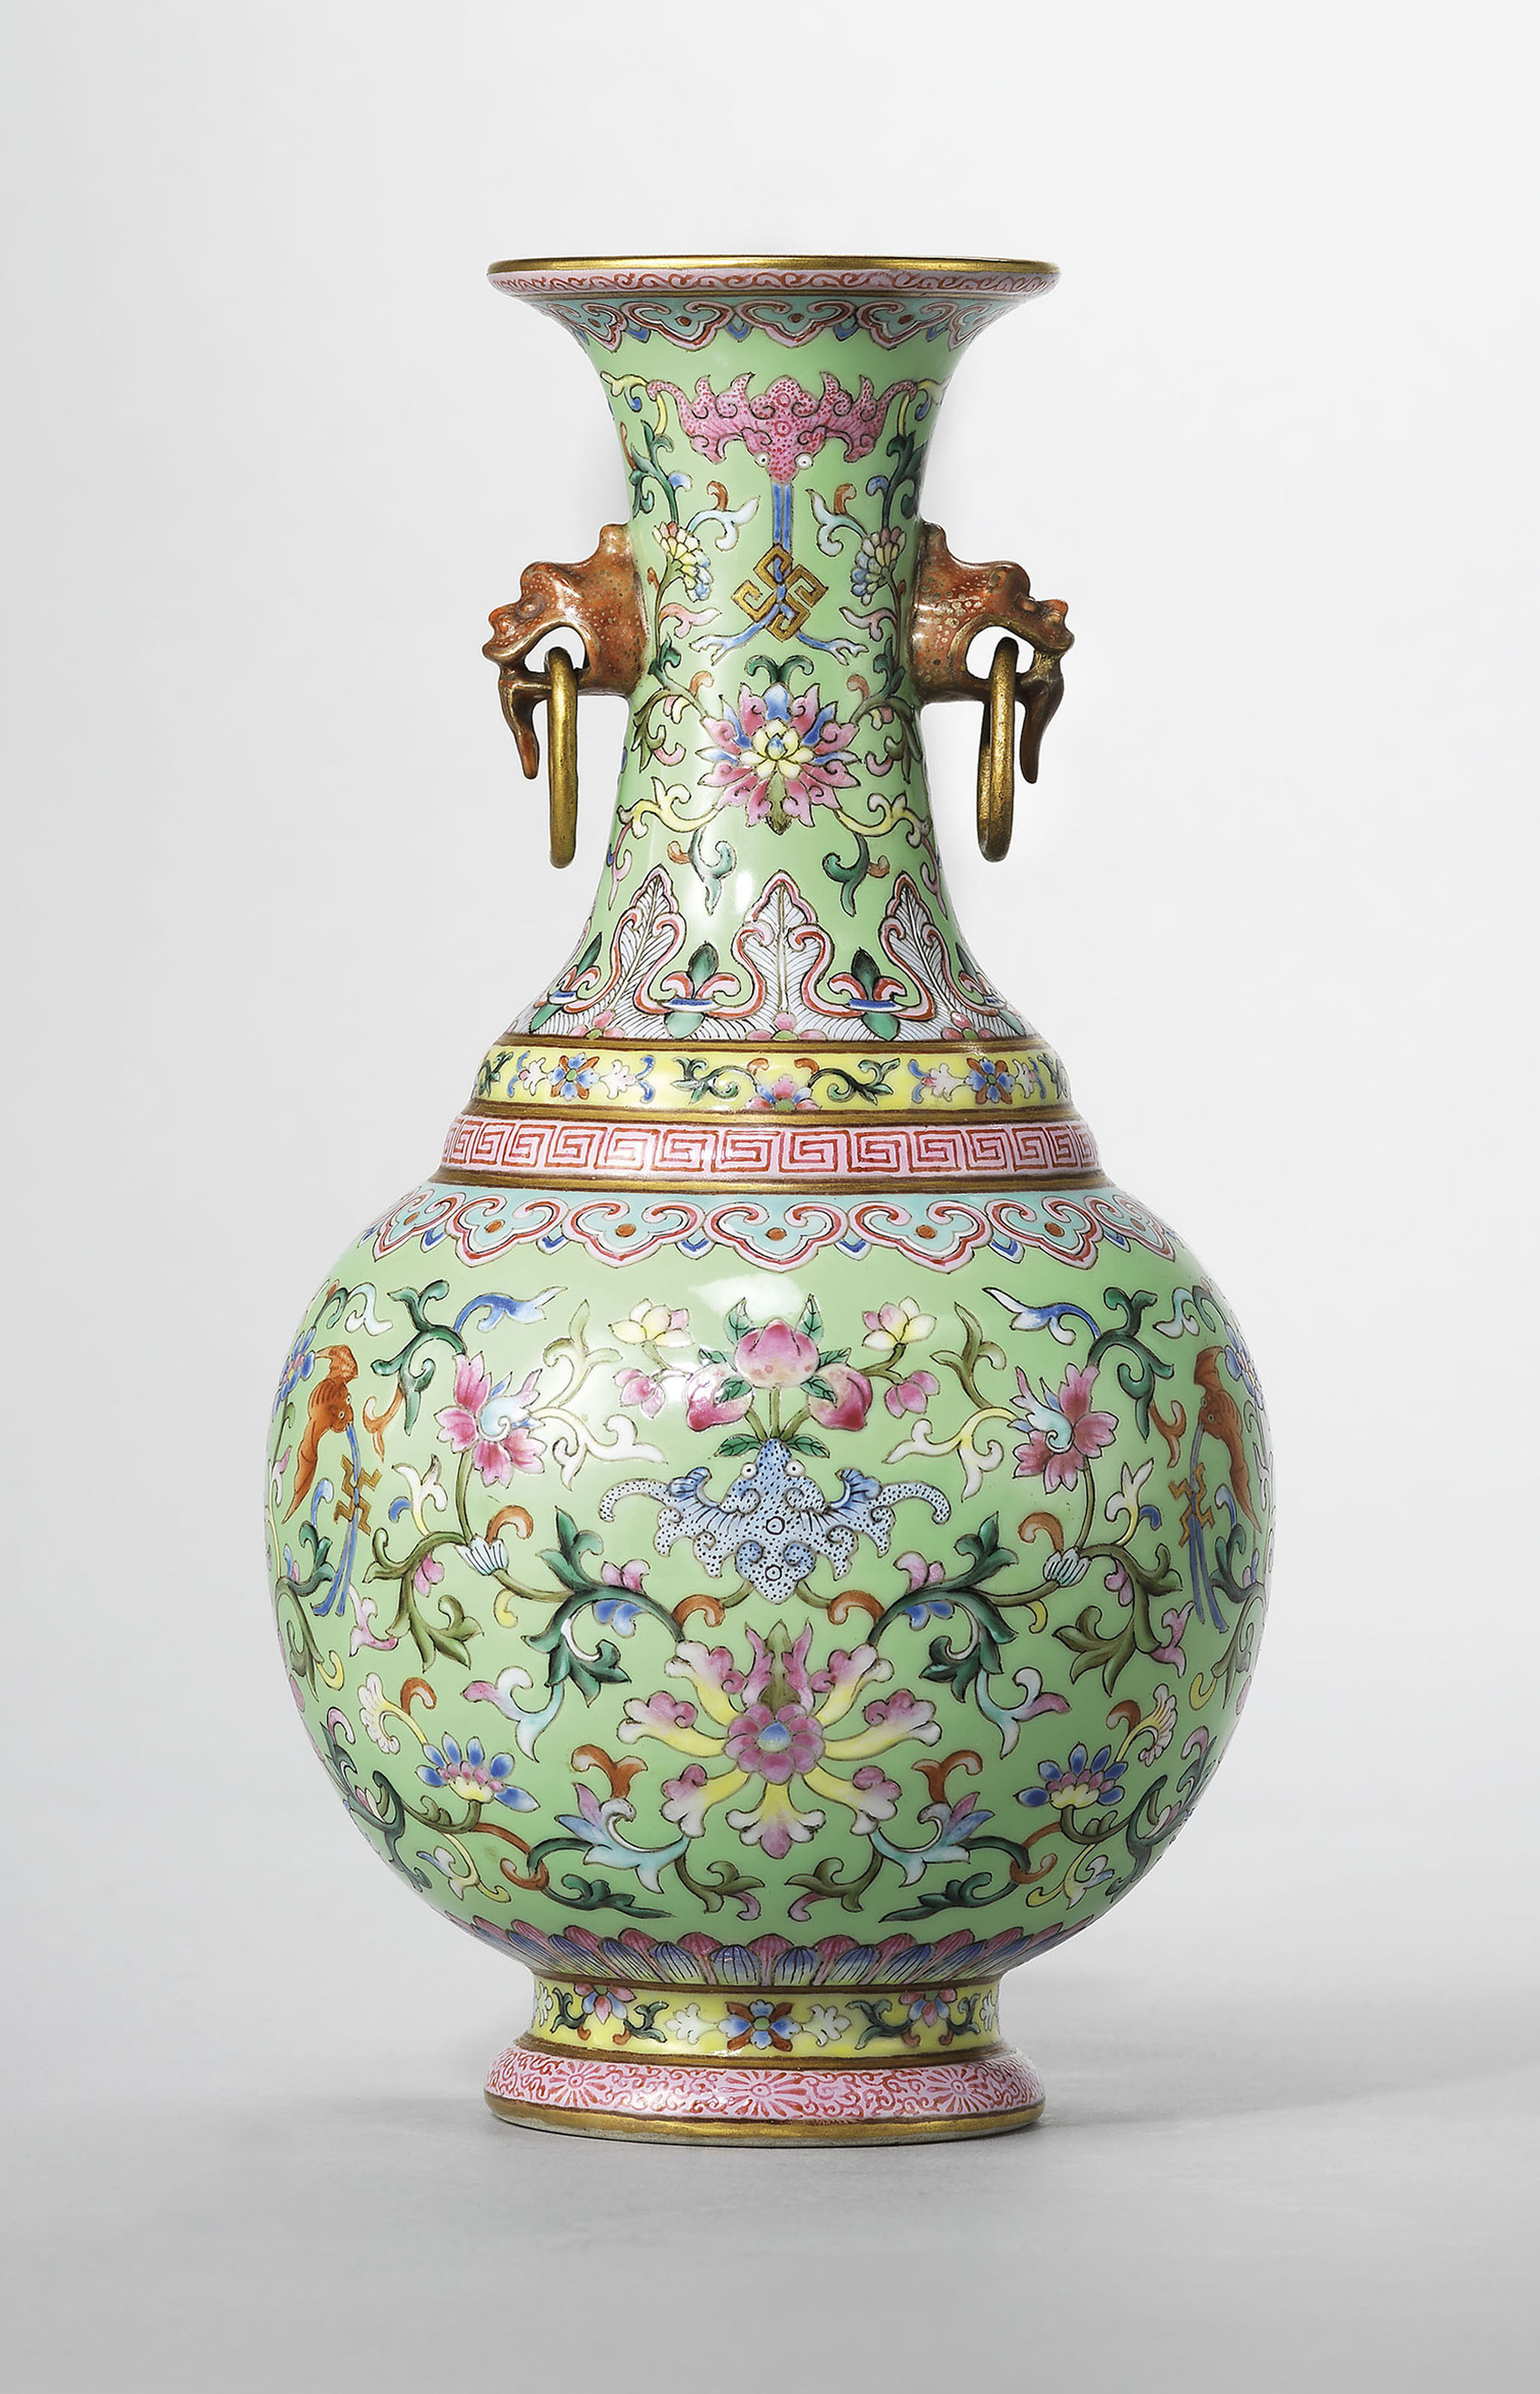 3 piece white vase set of a guide to the symbolism of flowers on chinese ceramics christies inside a lime green ground famille rose twin handled vase jiaqing six character